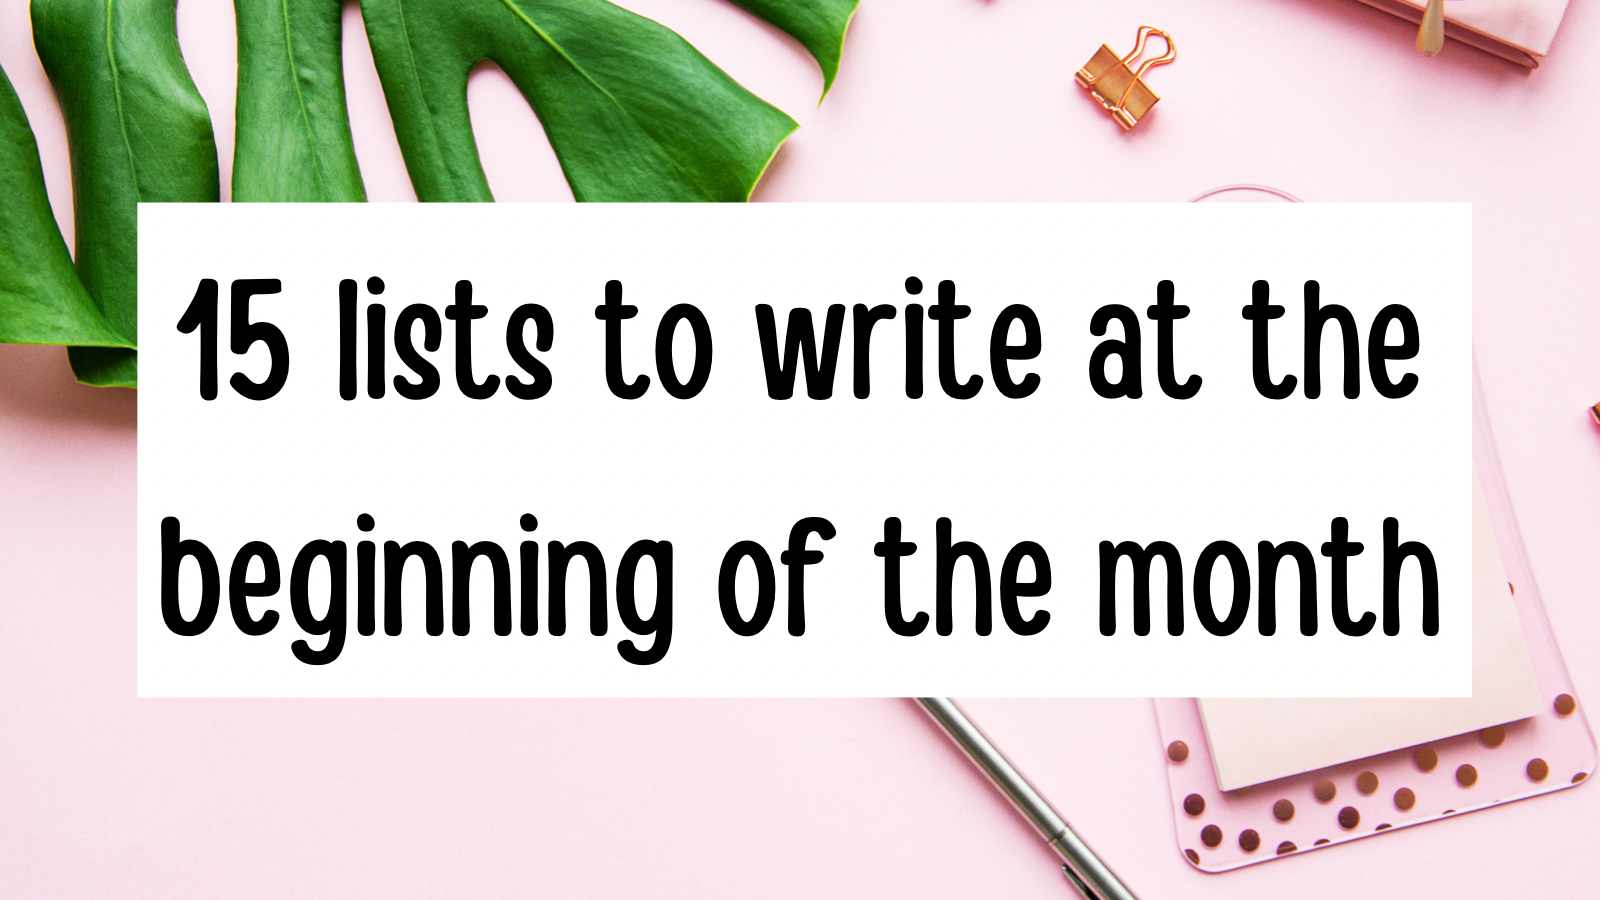 15 lists to write at the beginning of the month!